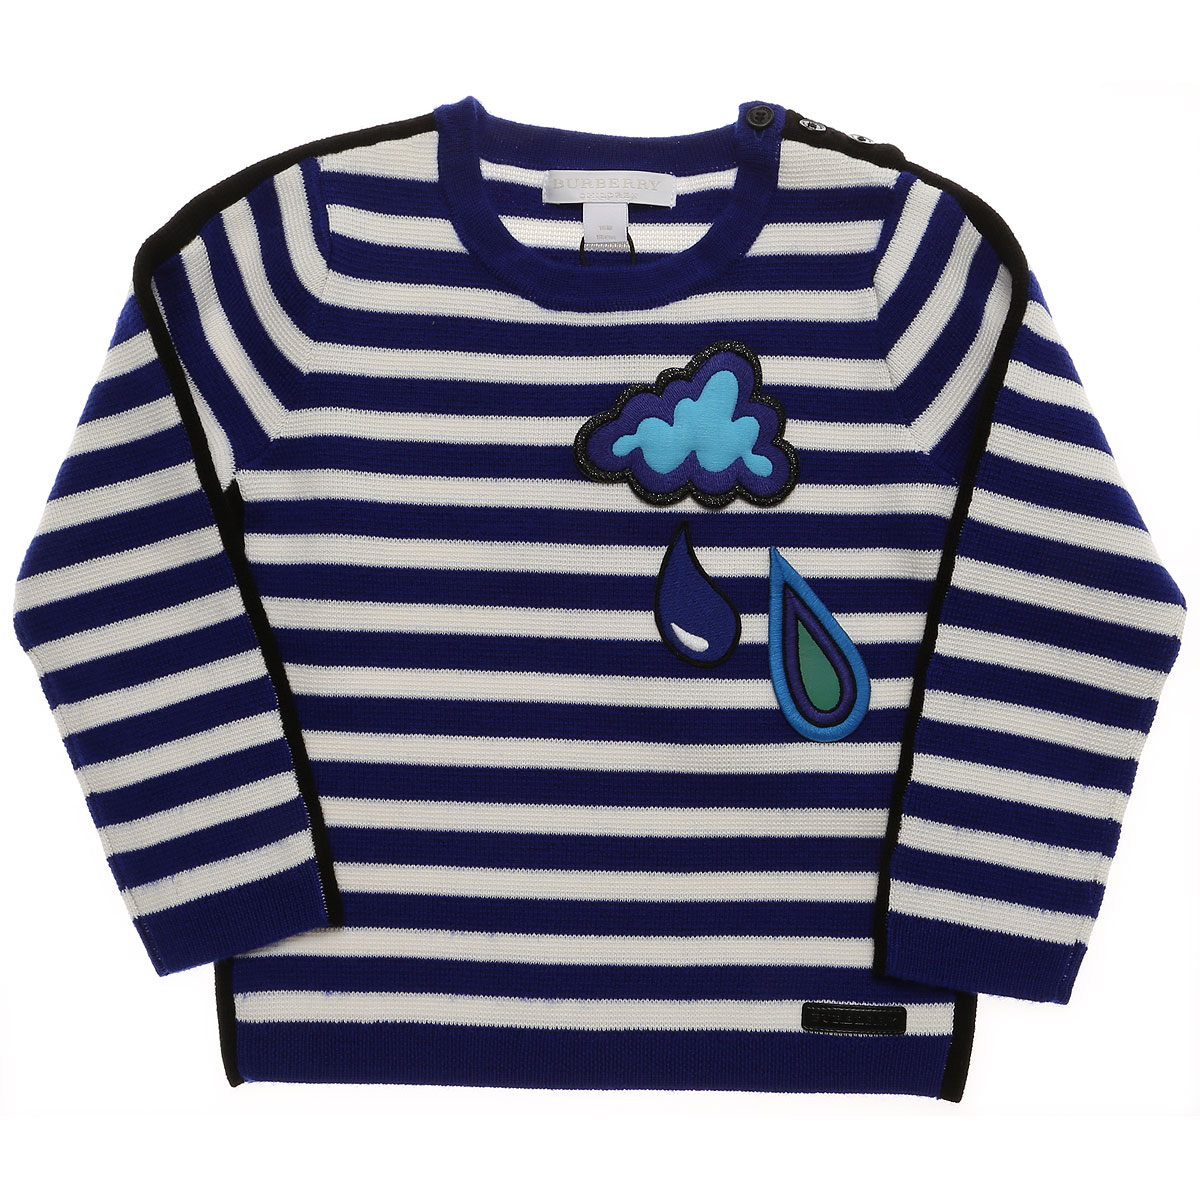 Burberry Baby Sweaters for Girls On Sale in Outlet, Brillant Blue, Cotton, 2019, 12M 18M